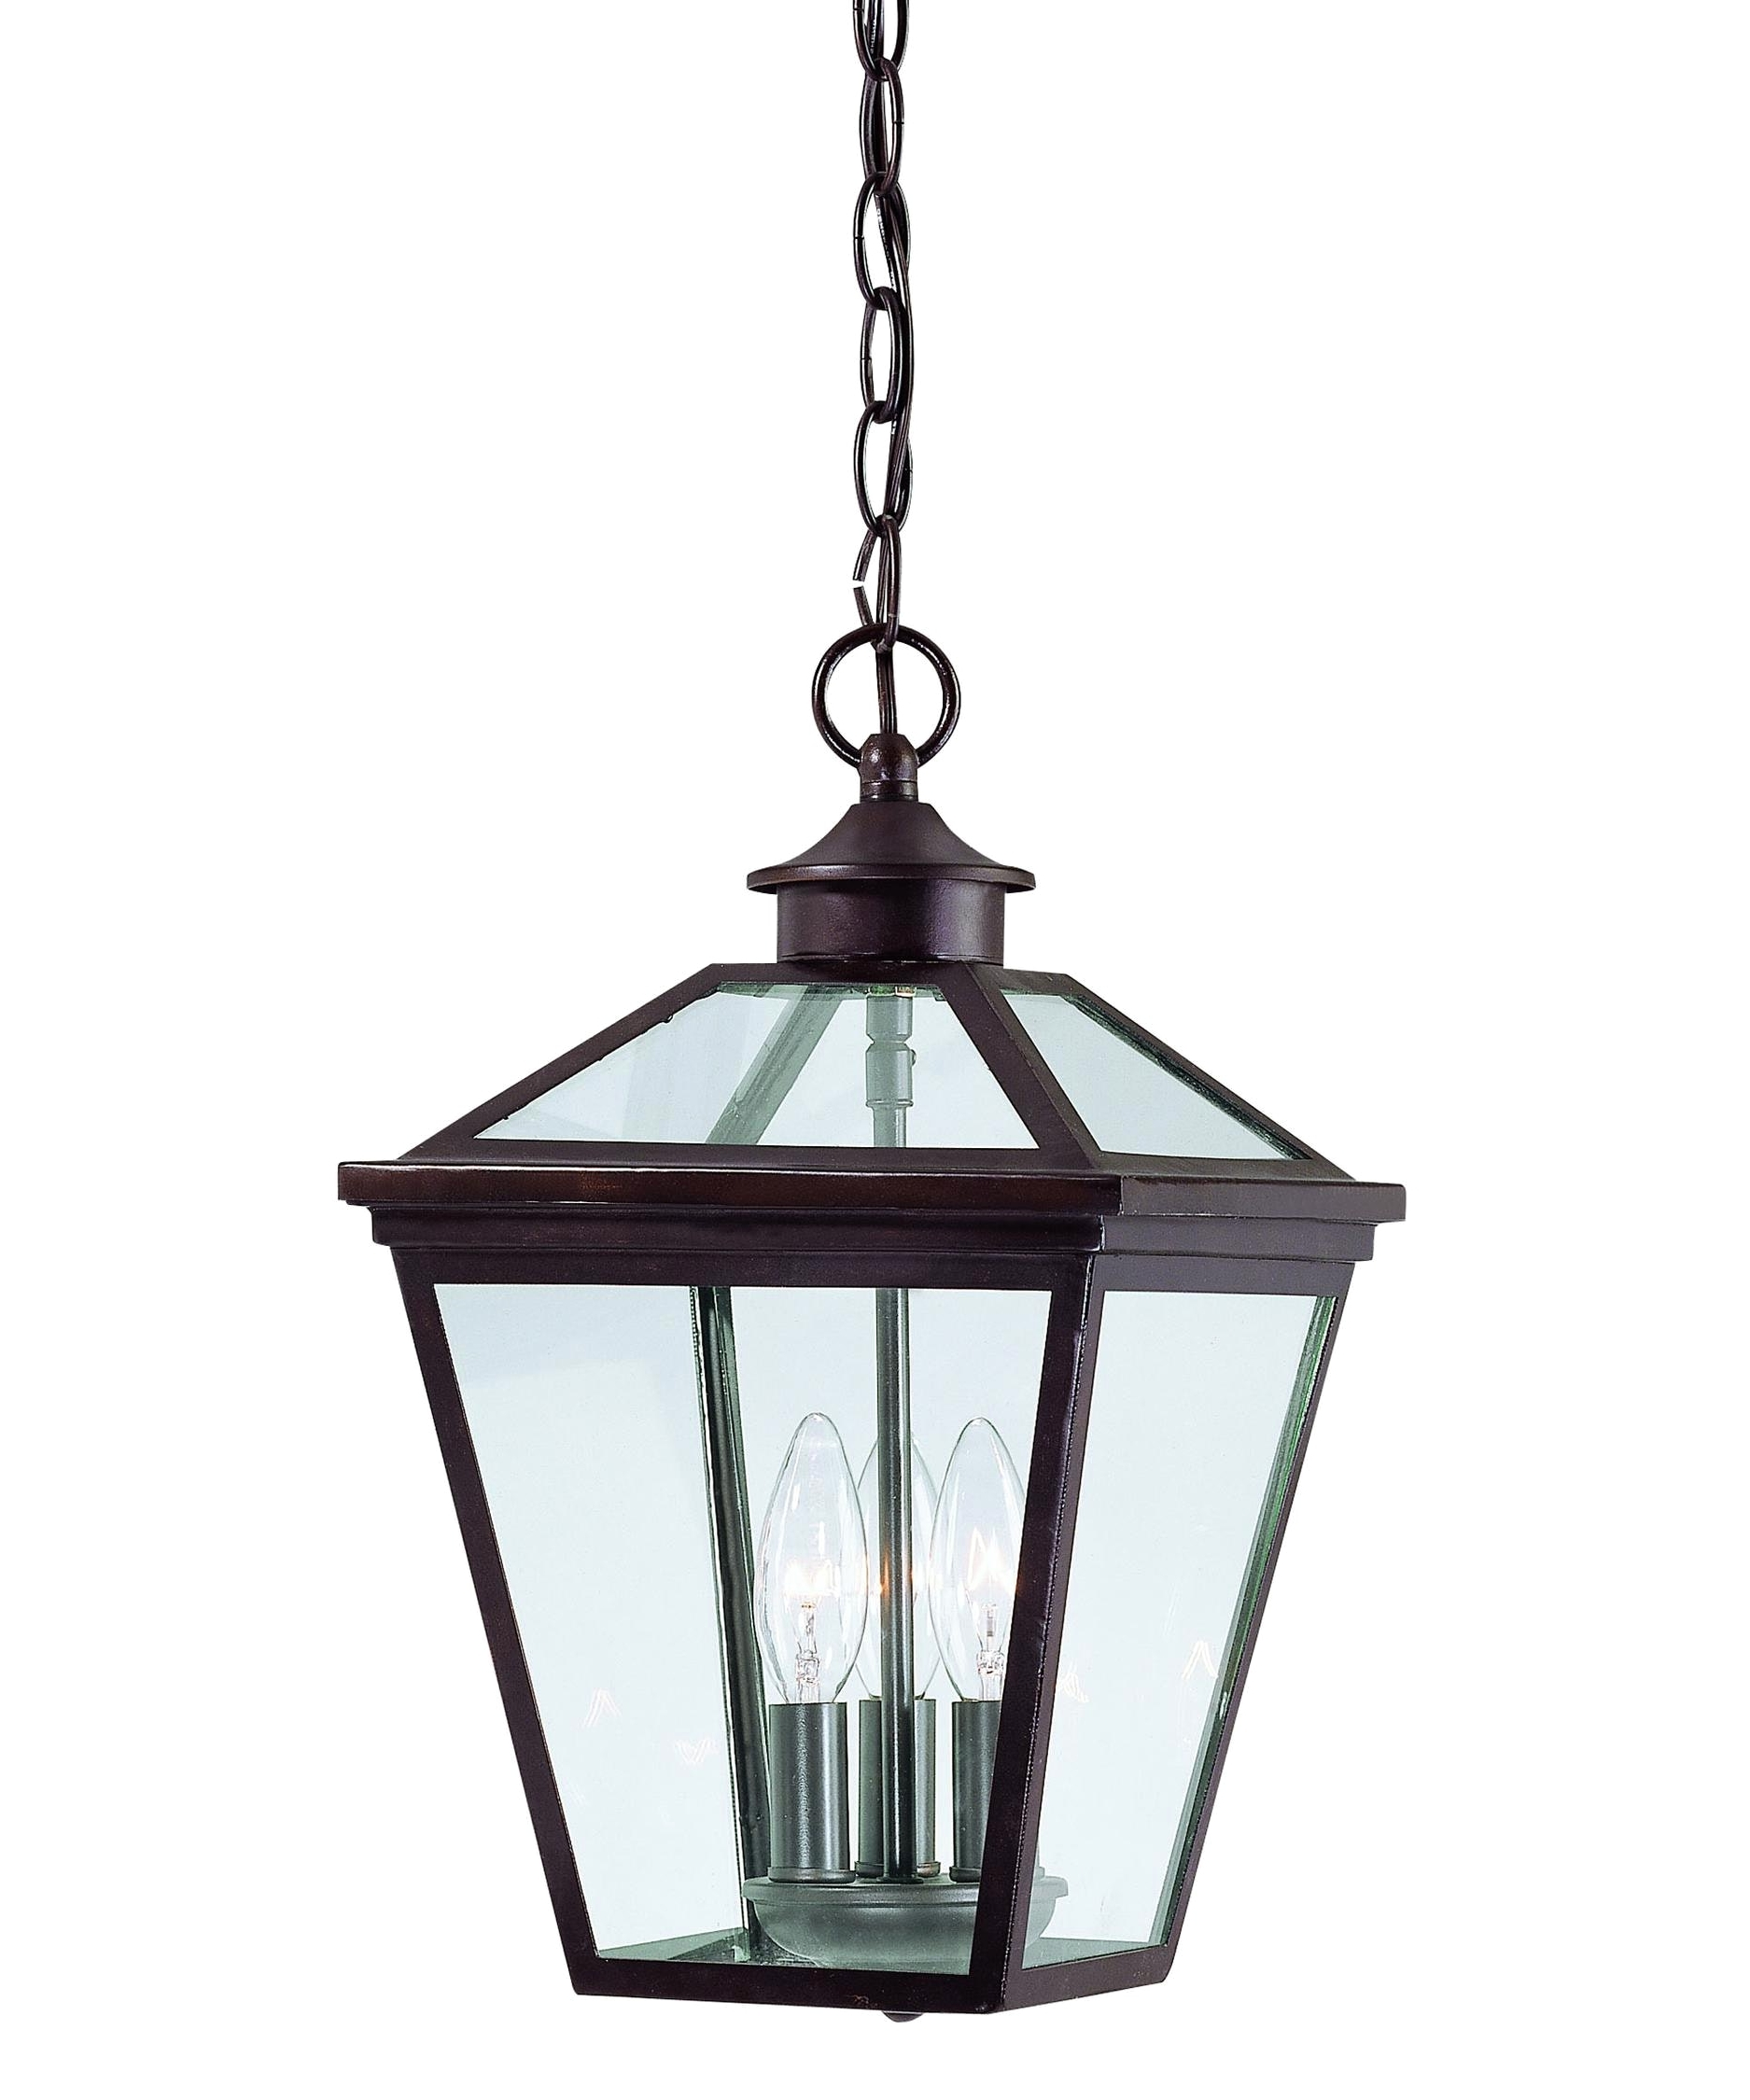 Fashionable Top Outdoor Pendant Lighting Home Depot Ideas (View 2 of 20)